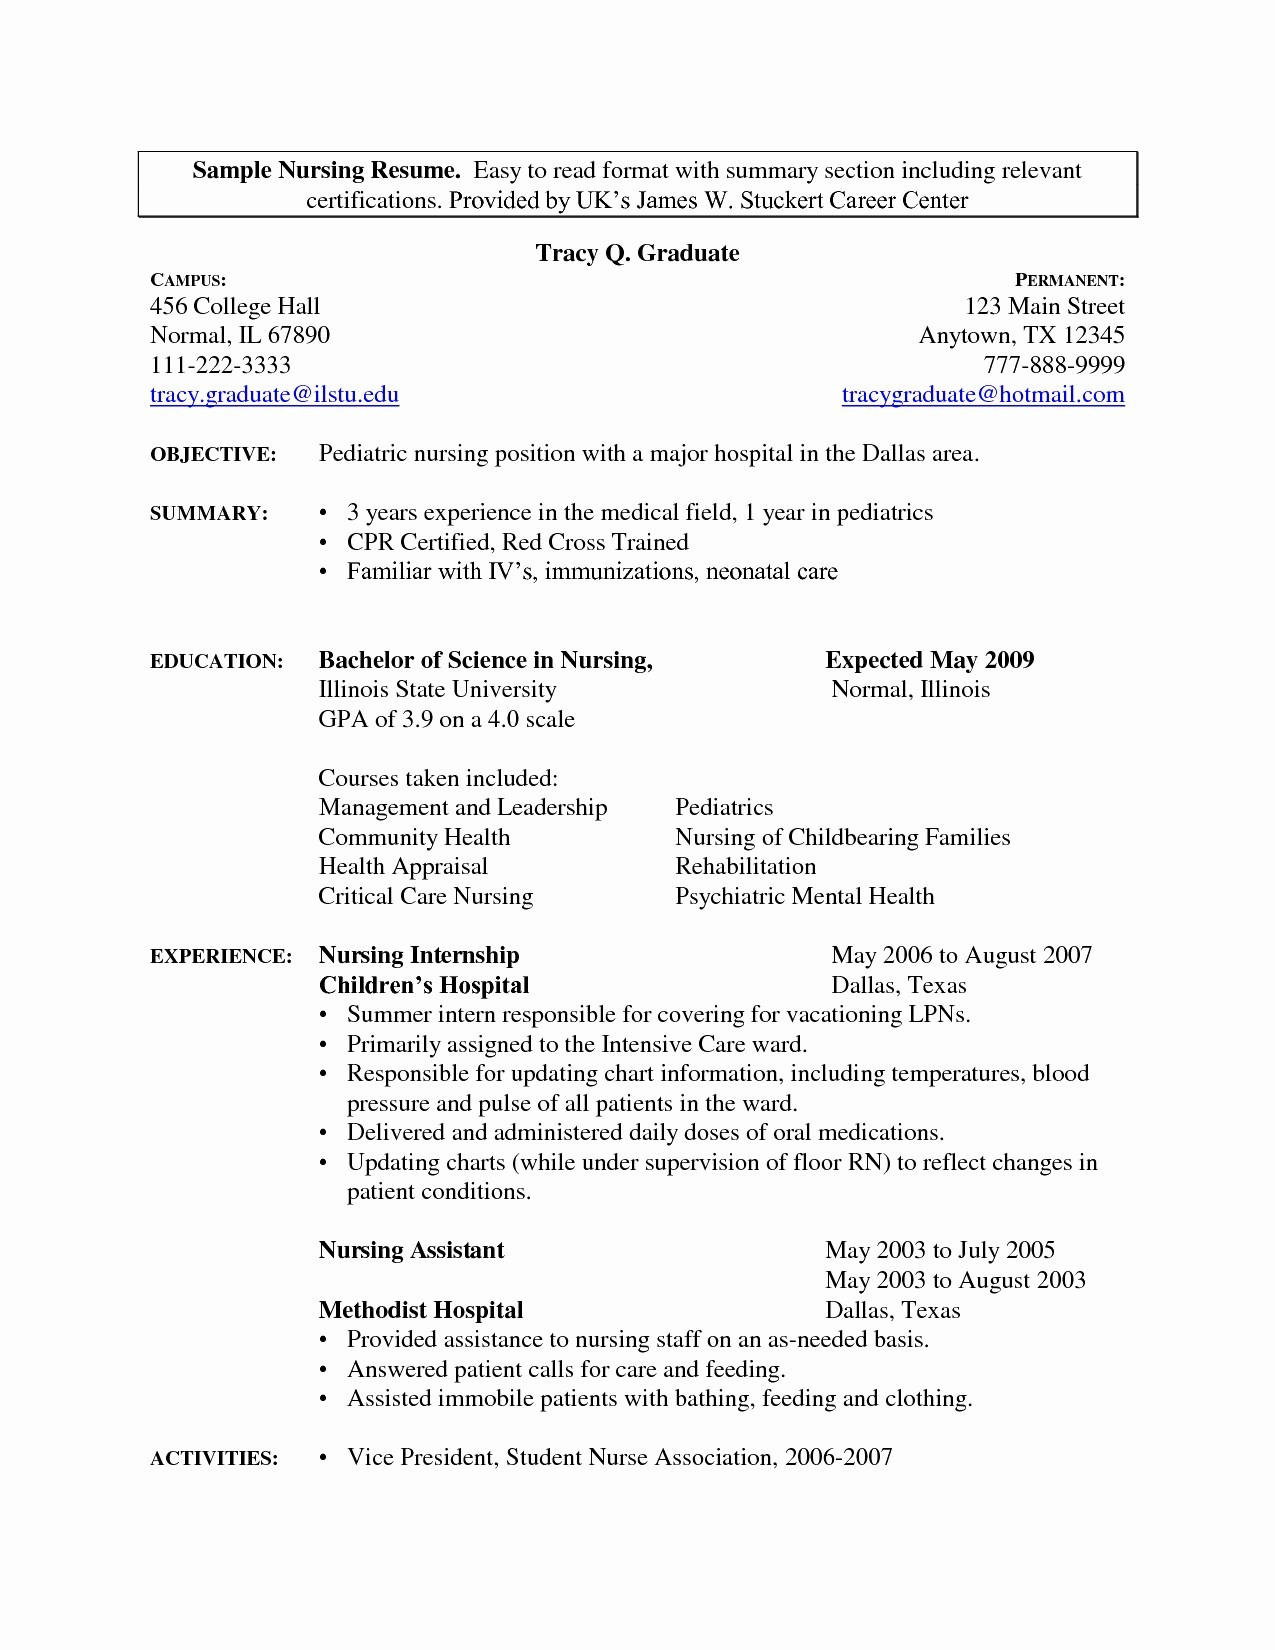 What to Put Under Leadership On Resume - Leadership Skills Resume Lovely 26 What to Put Resume Free Download